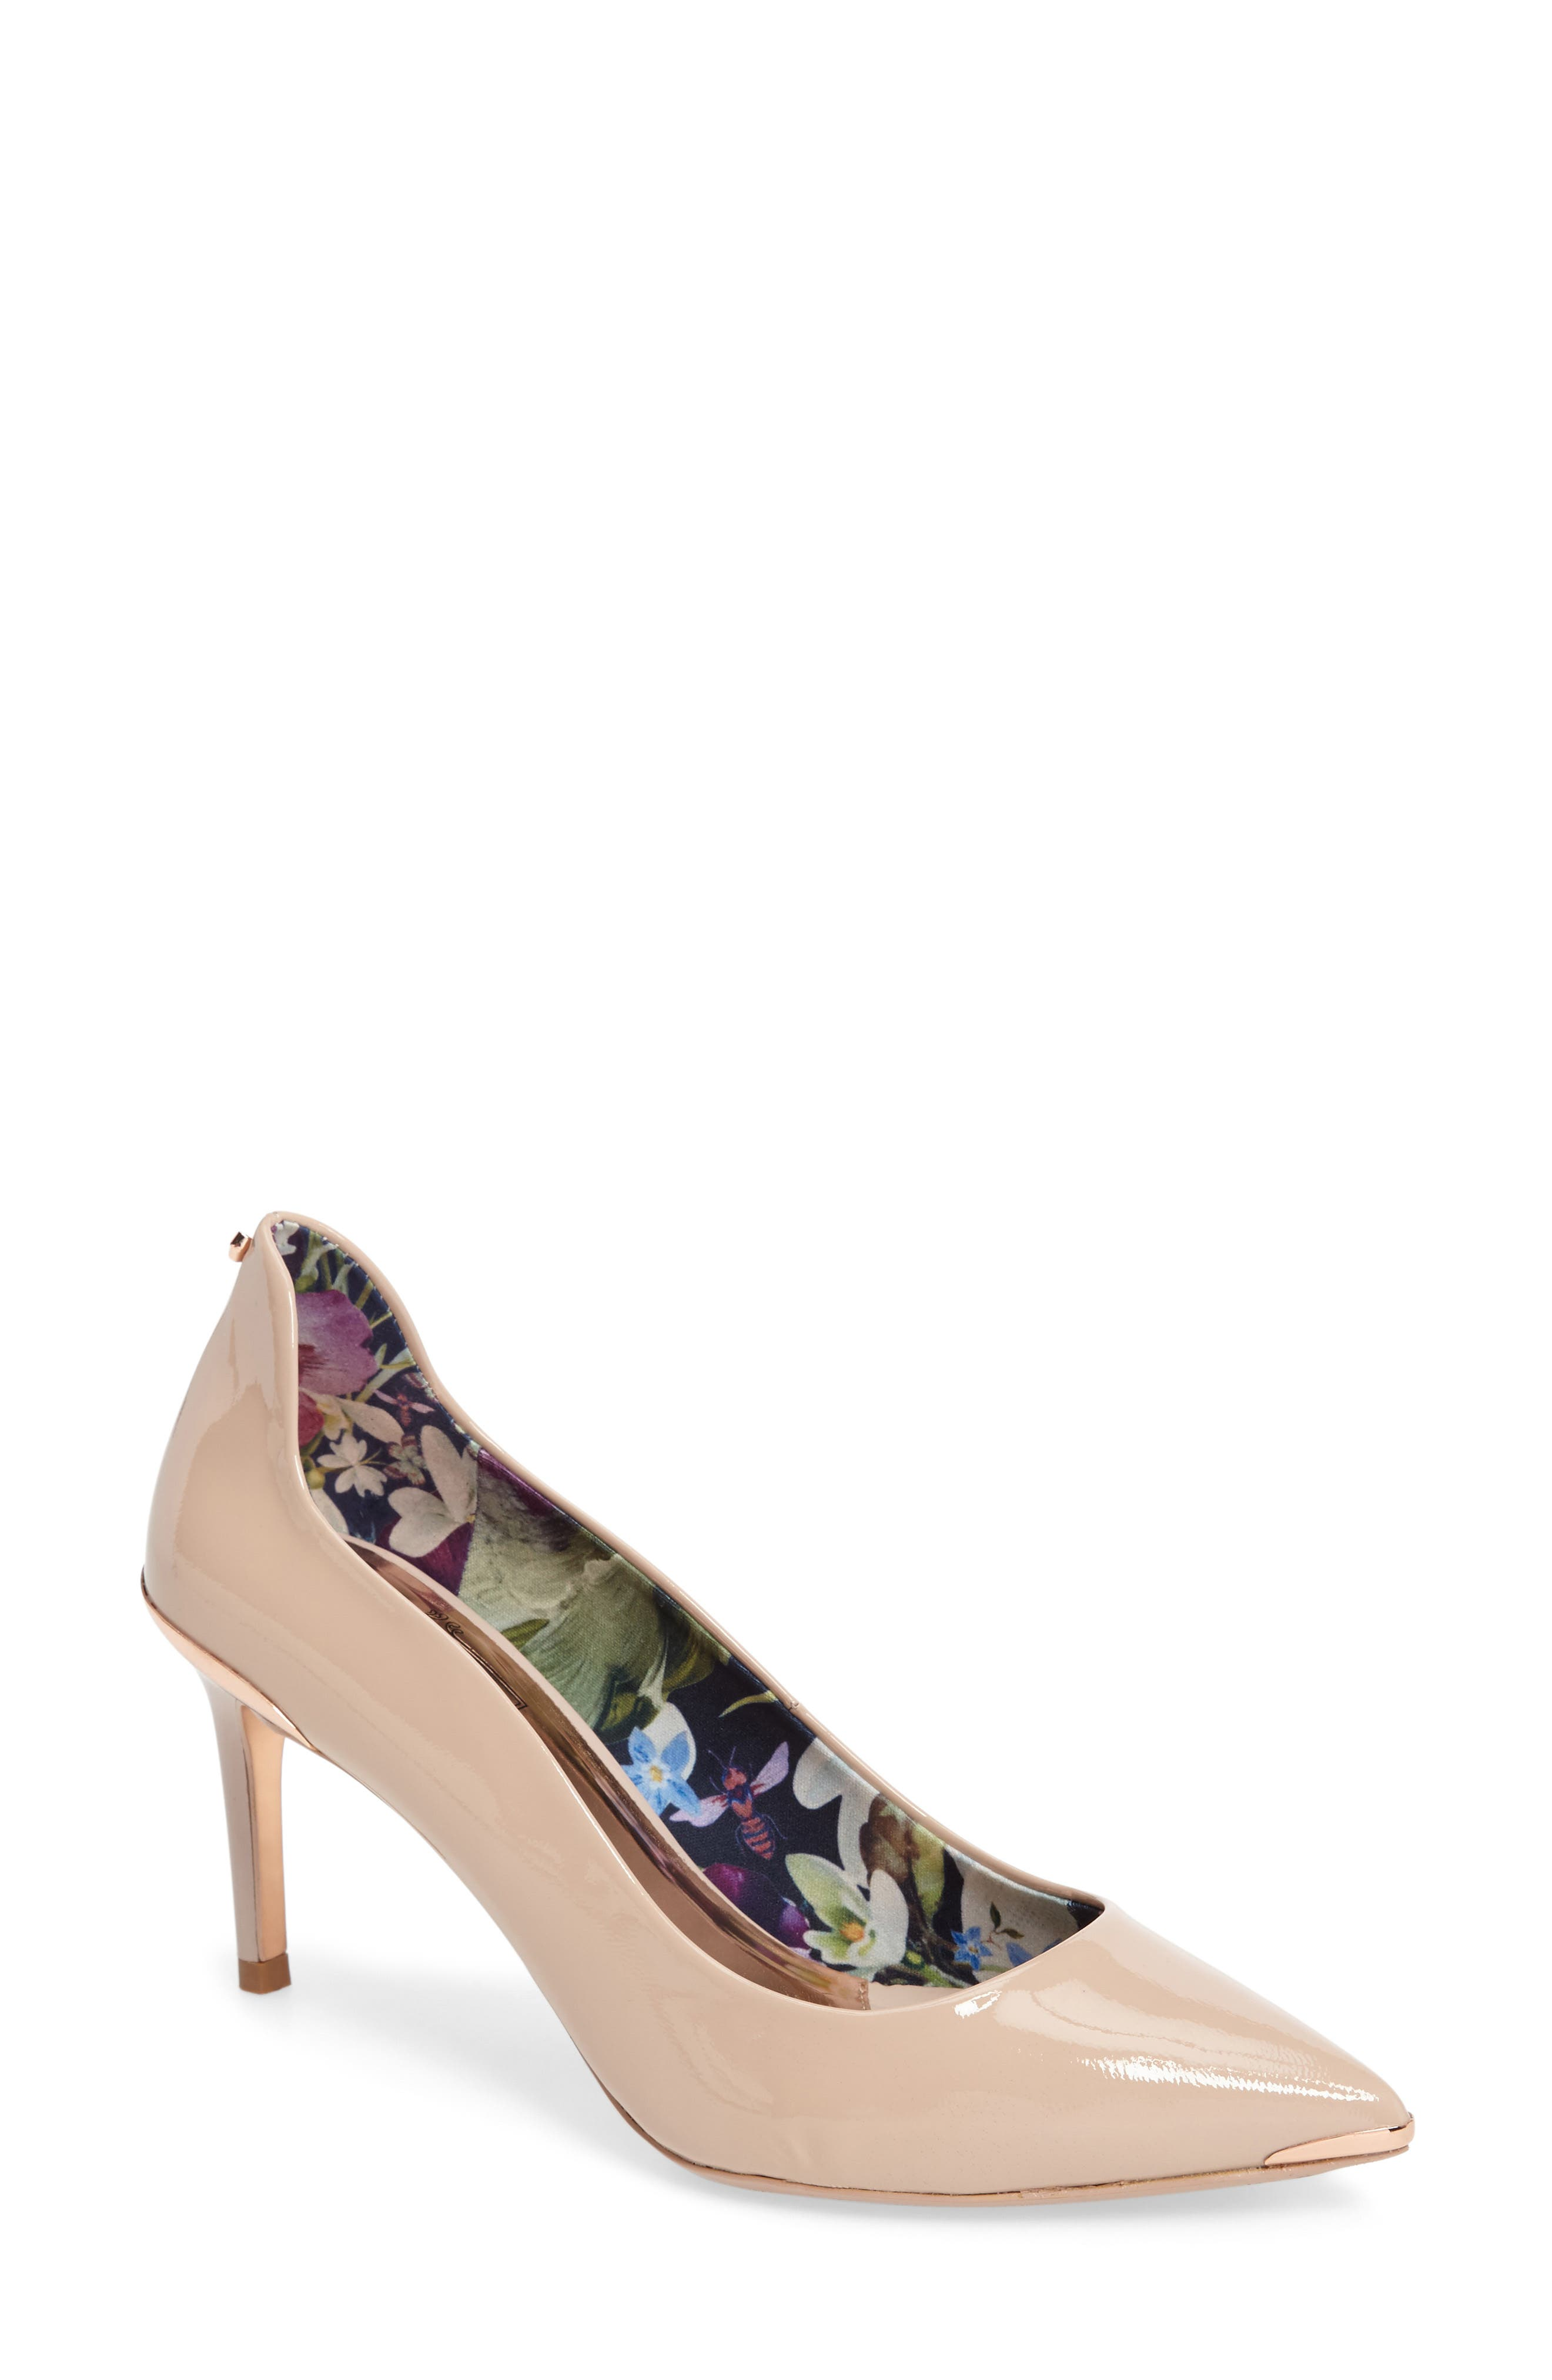 Vyixin Pump,                             Main thumbnail 1, color,                             NUDE PATENT LEATHER